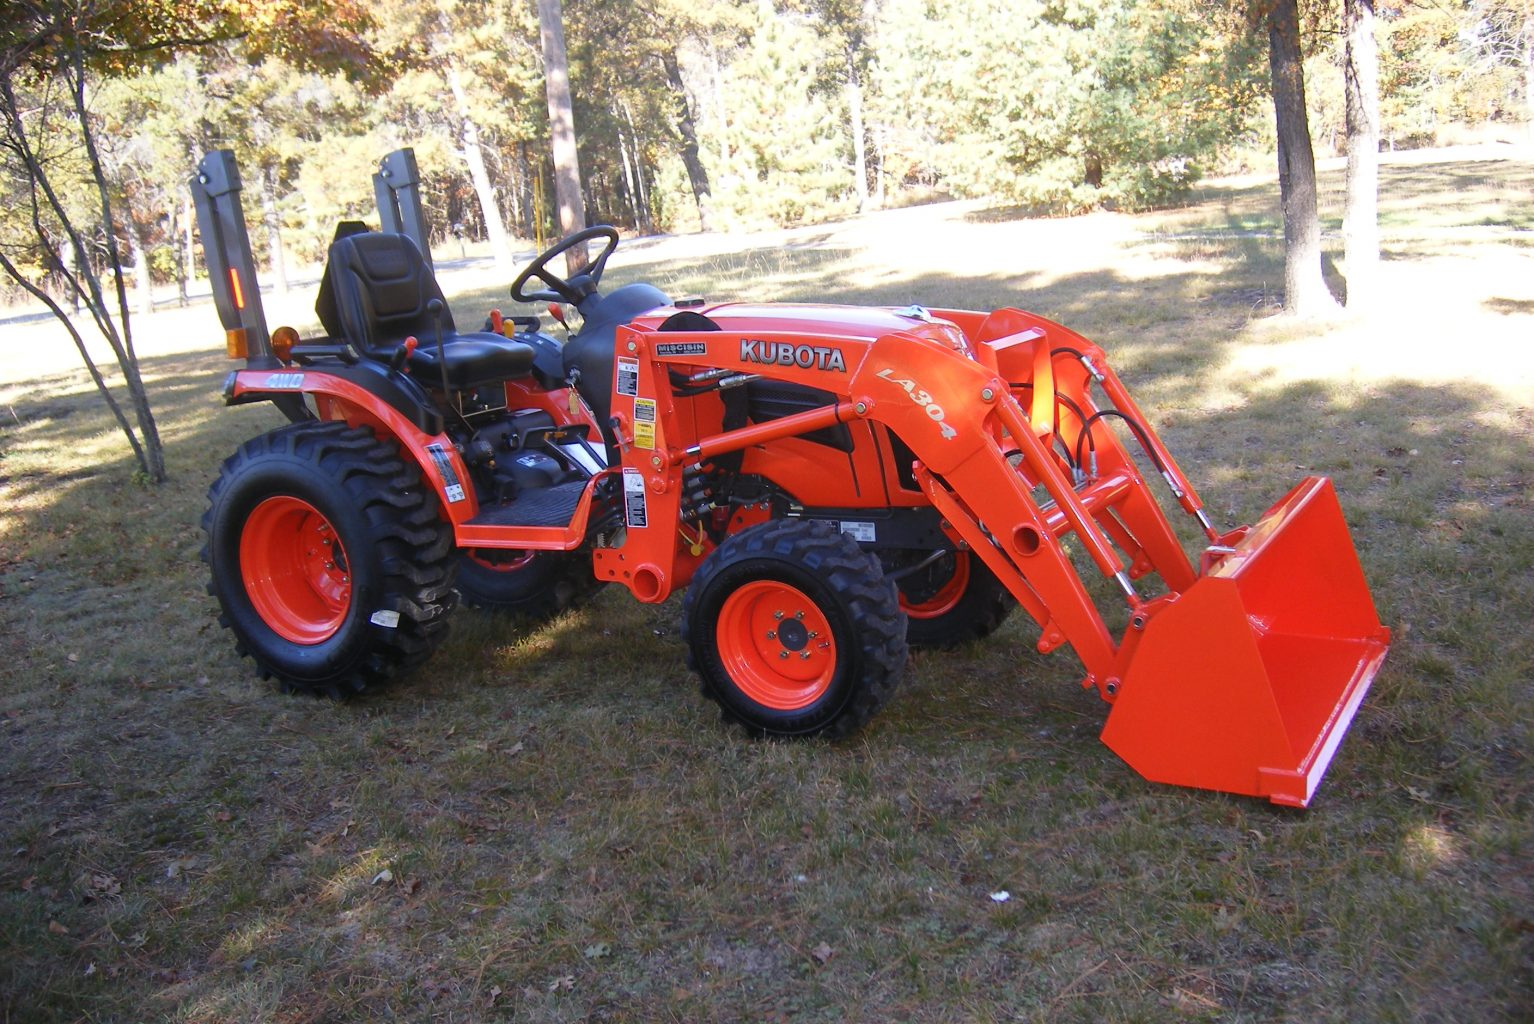 Kubota Mower Accessories : Kubota b specs price backhoe loader mower and review